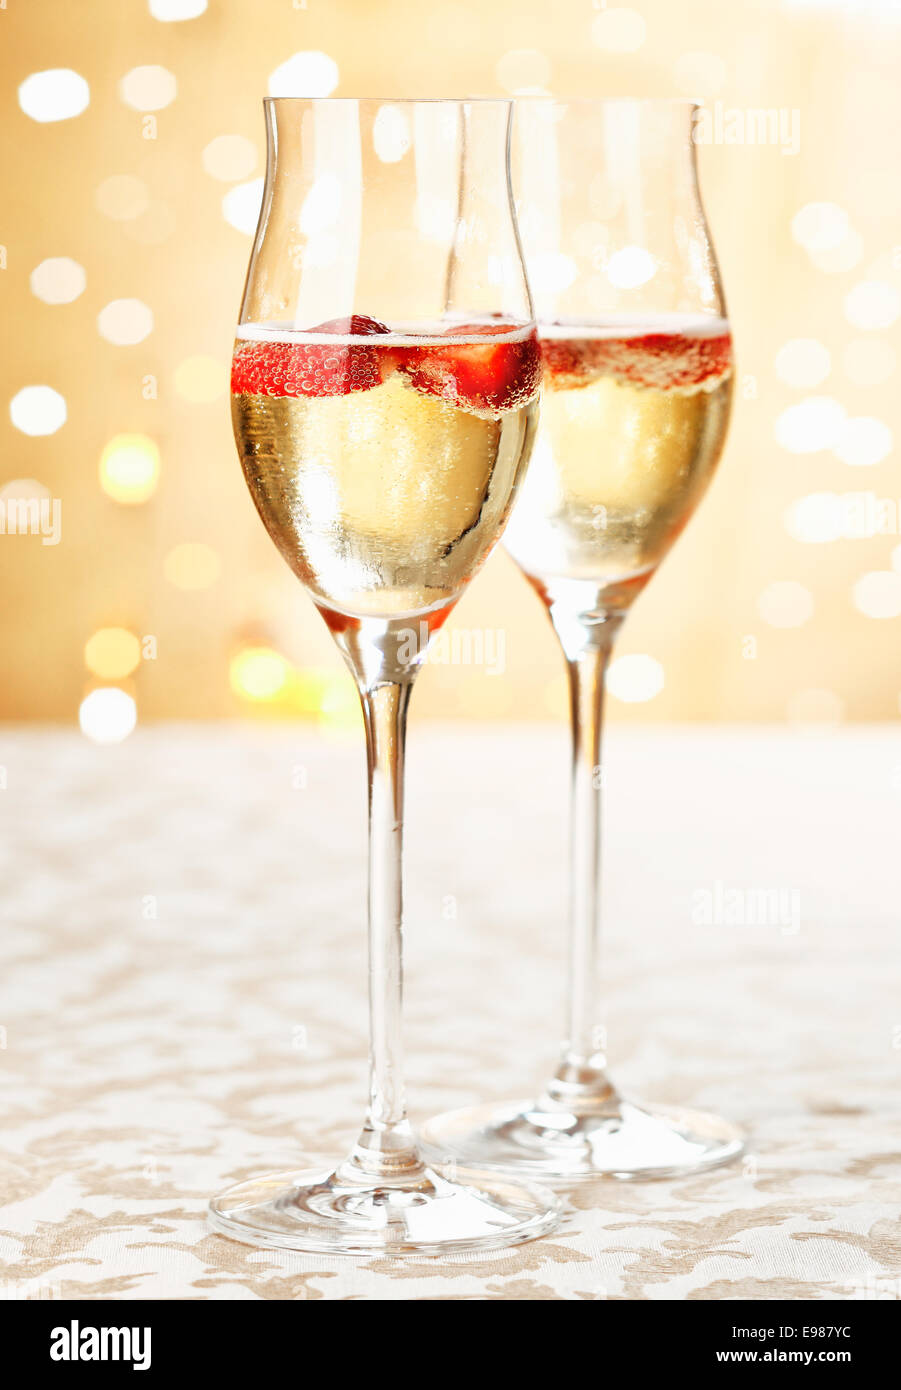 Festive champagne flutes filled with sparkling wine and floating strawberries with a backdrop bokeh of romantic - Stock Image